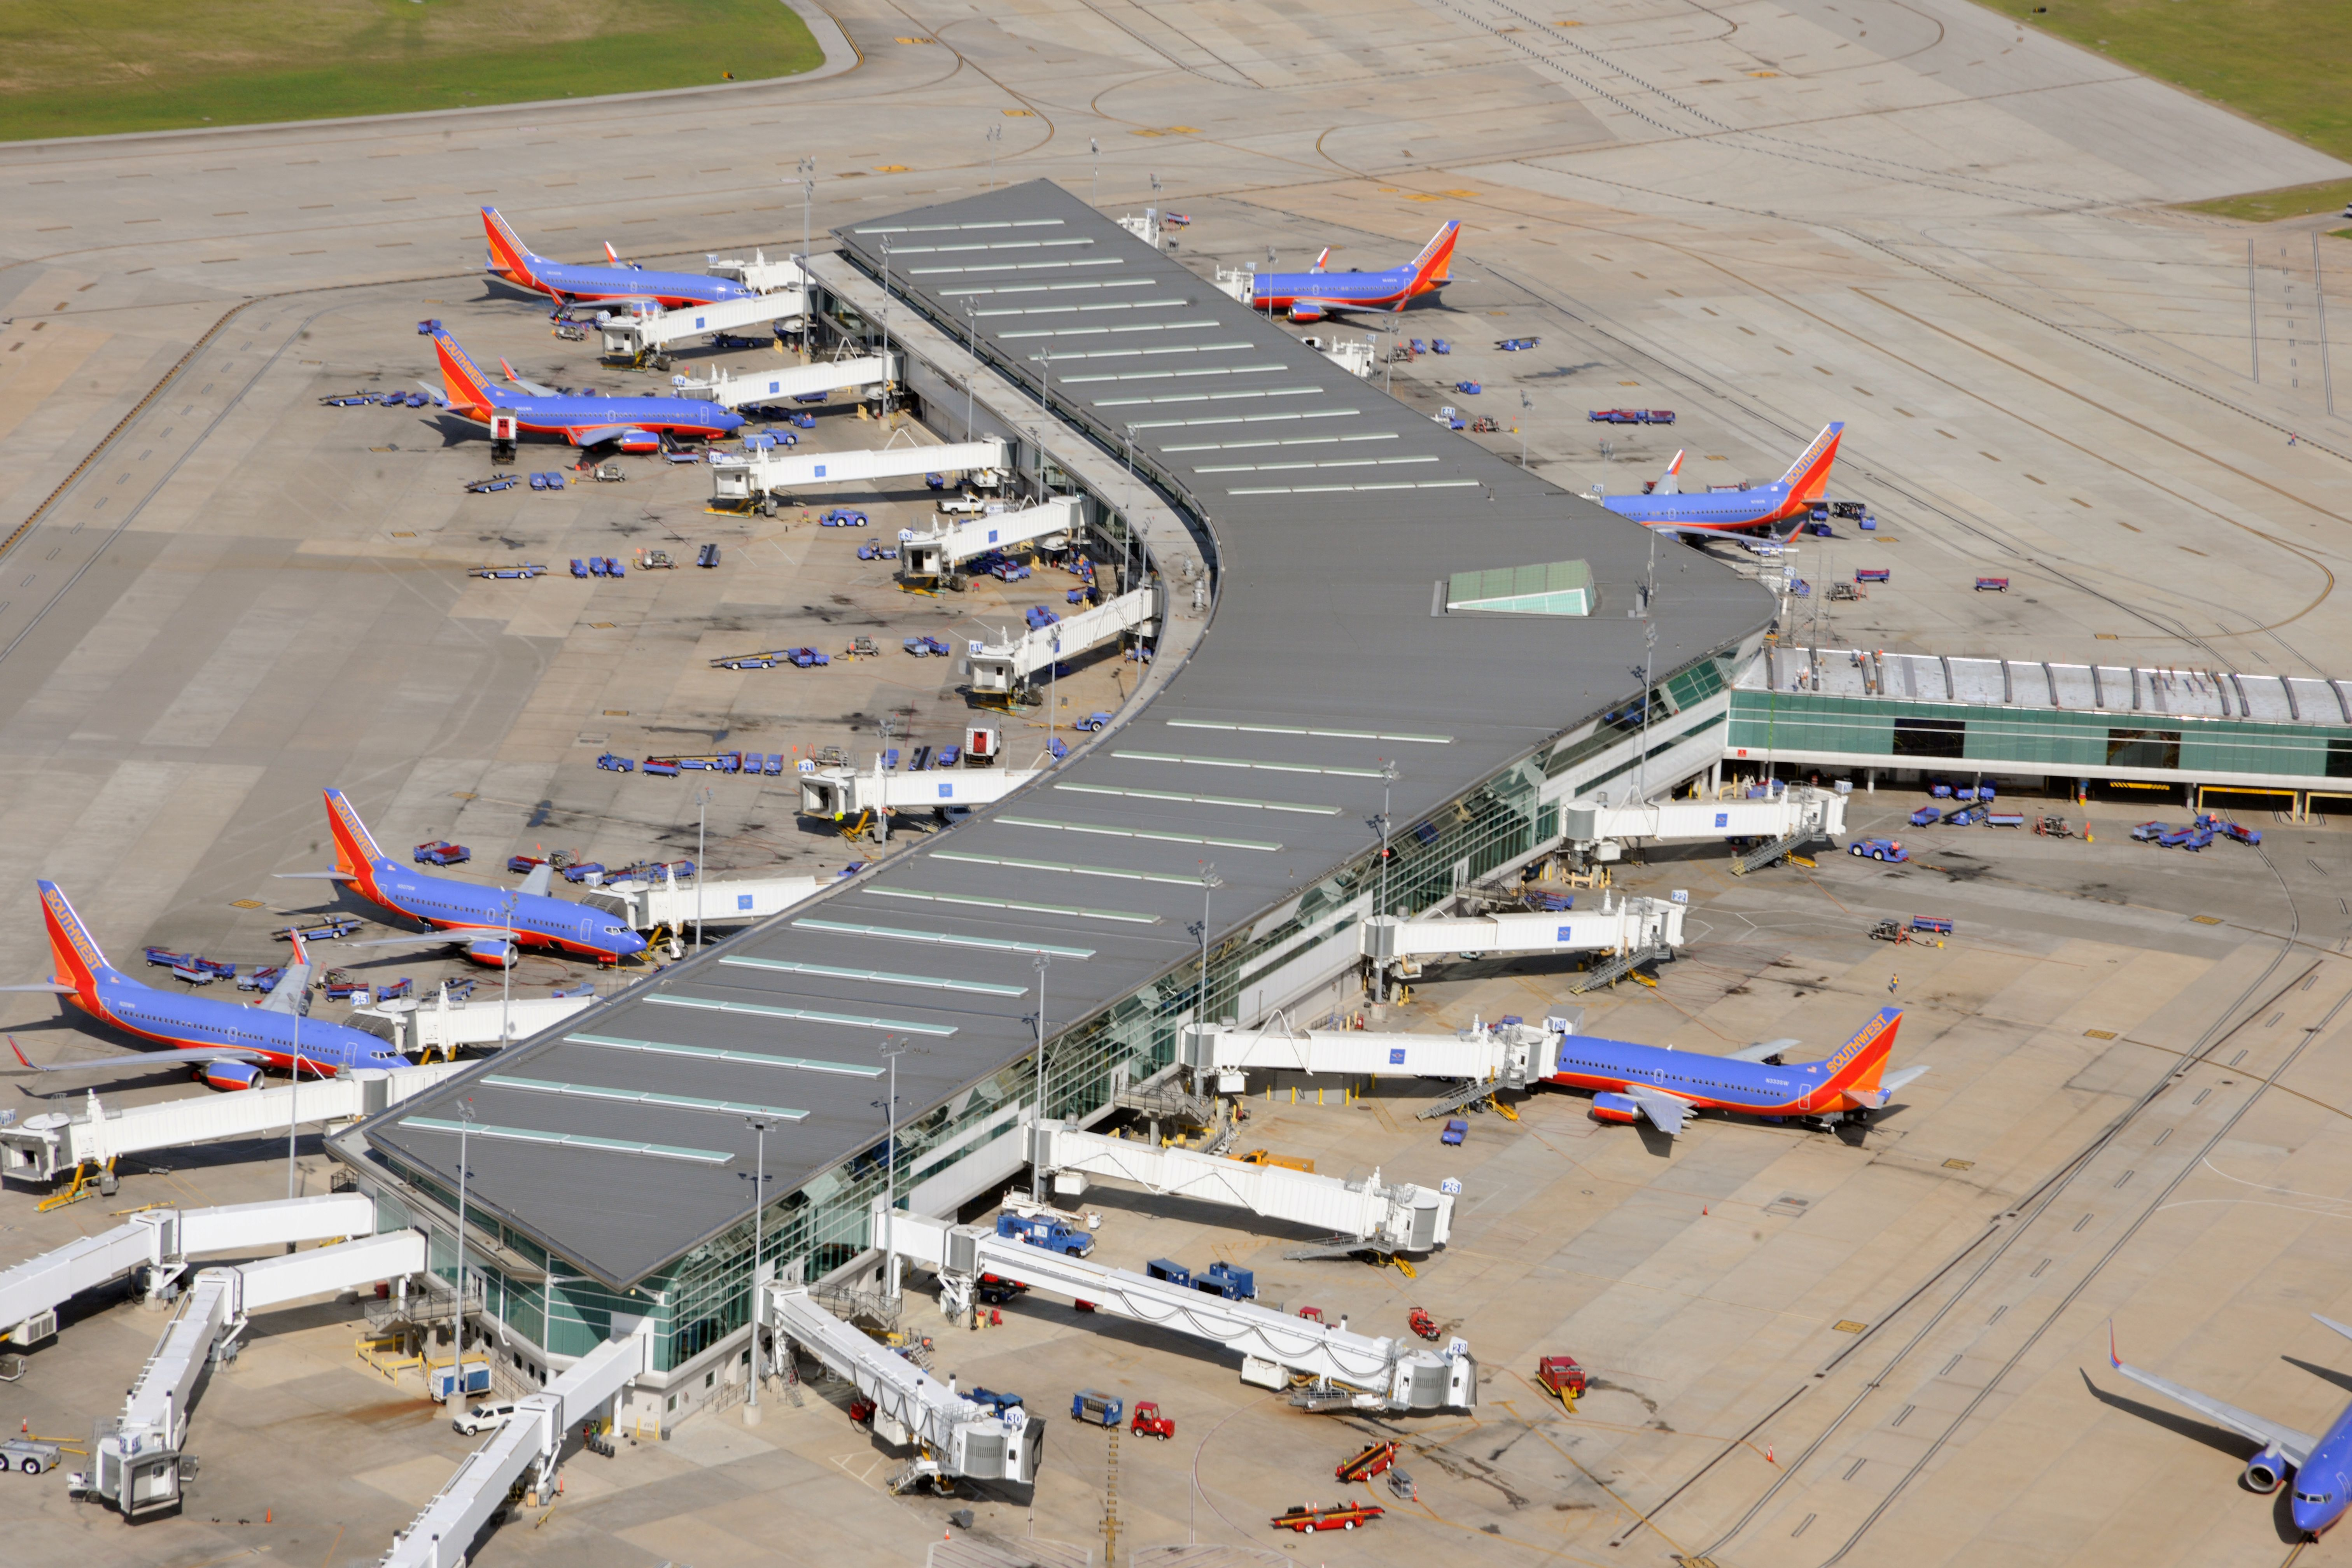 Houston William P. Hobby Airport Central Concourse - LEO A DALY (2005) - A major domestic hub for Southwest Airlines, the low cost carrier is expanding it's facilities with the intent of commencing international routes to and from the airfield beginning in 2015.